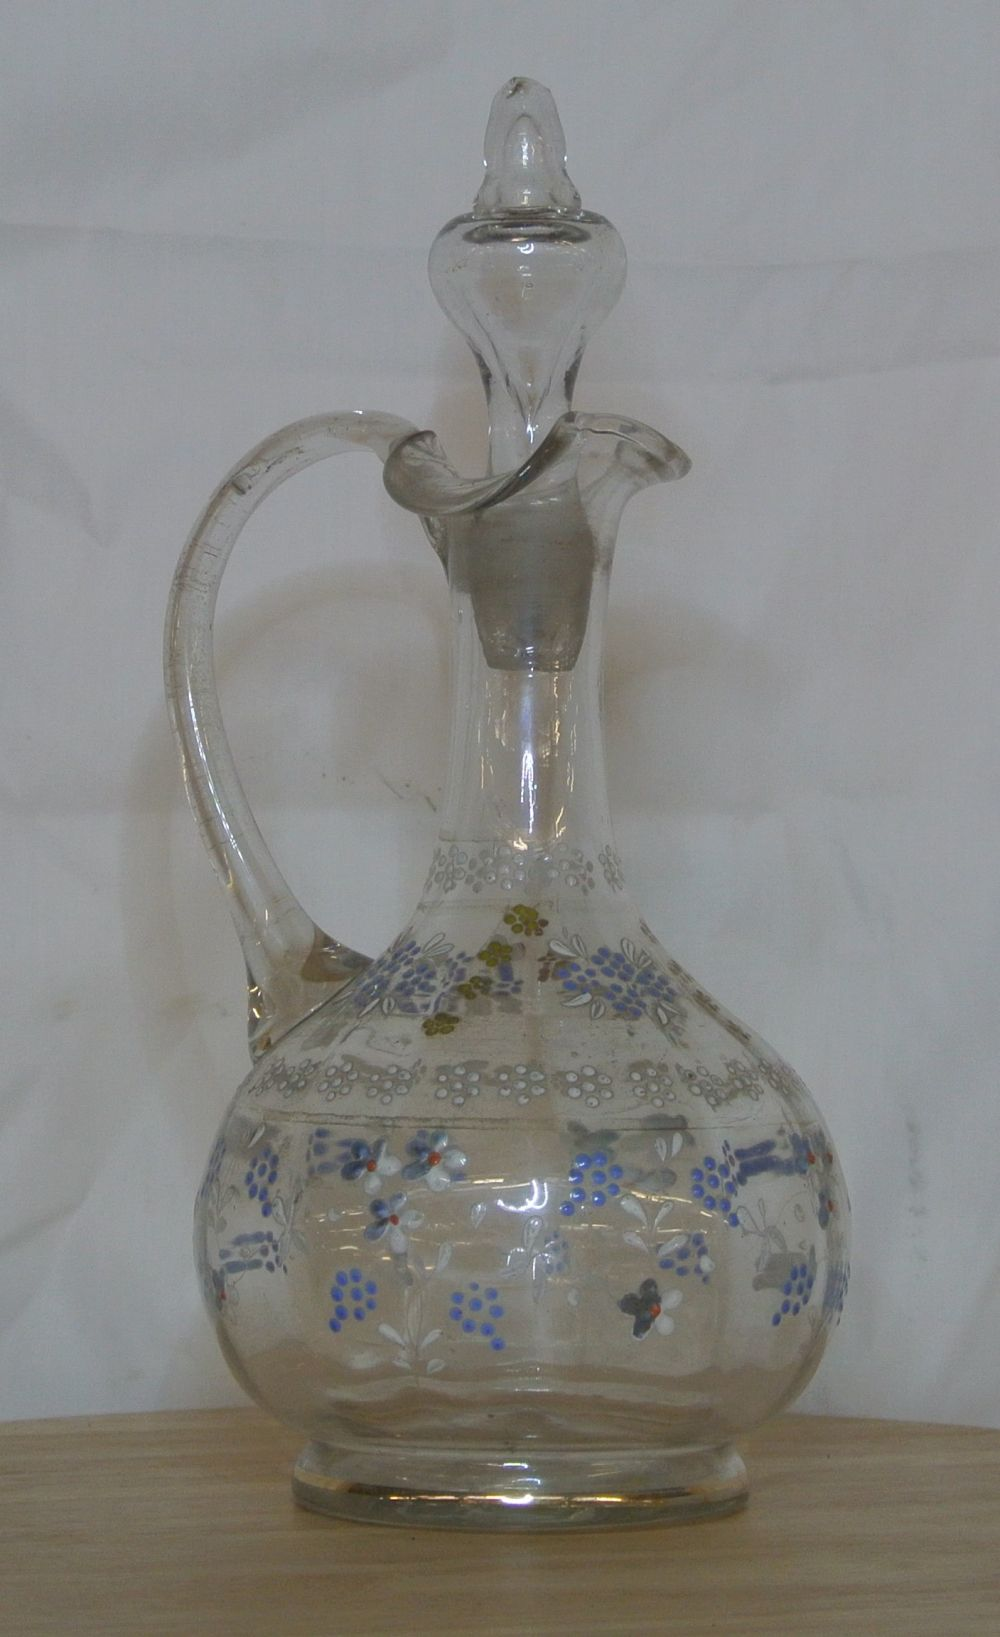 An antique hand painted glass claret jug